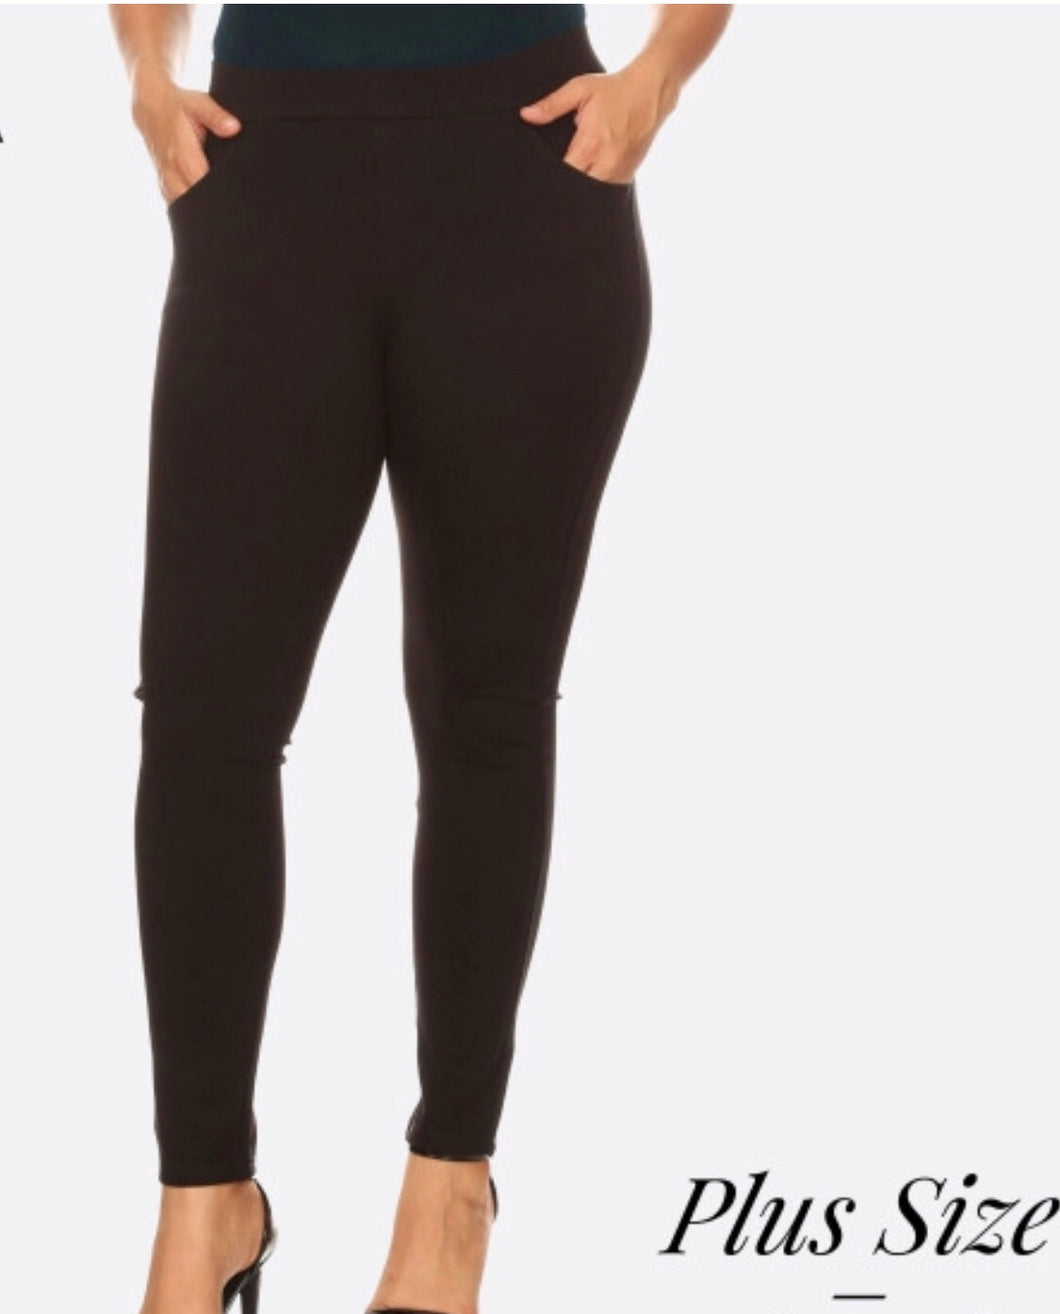 Black Plus Size Slim Knit Pants